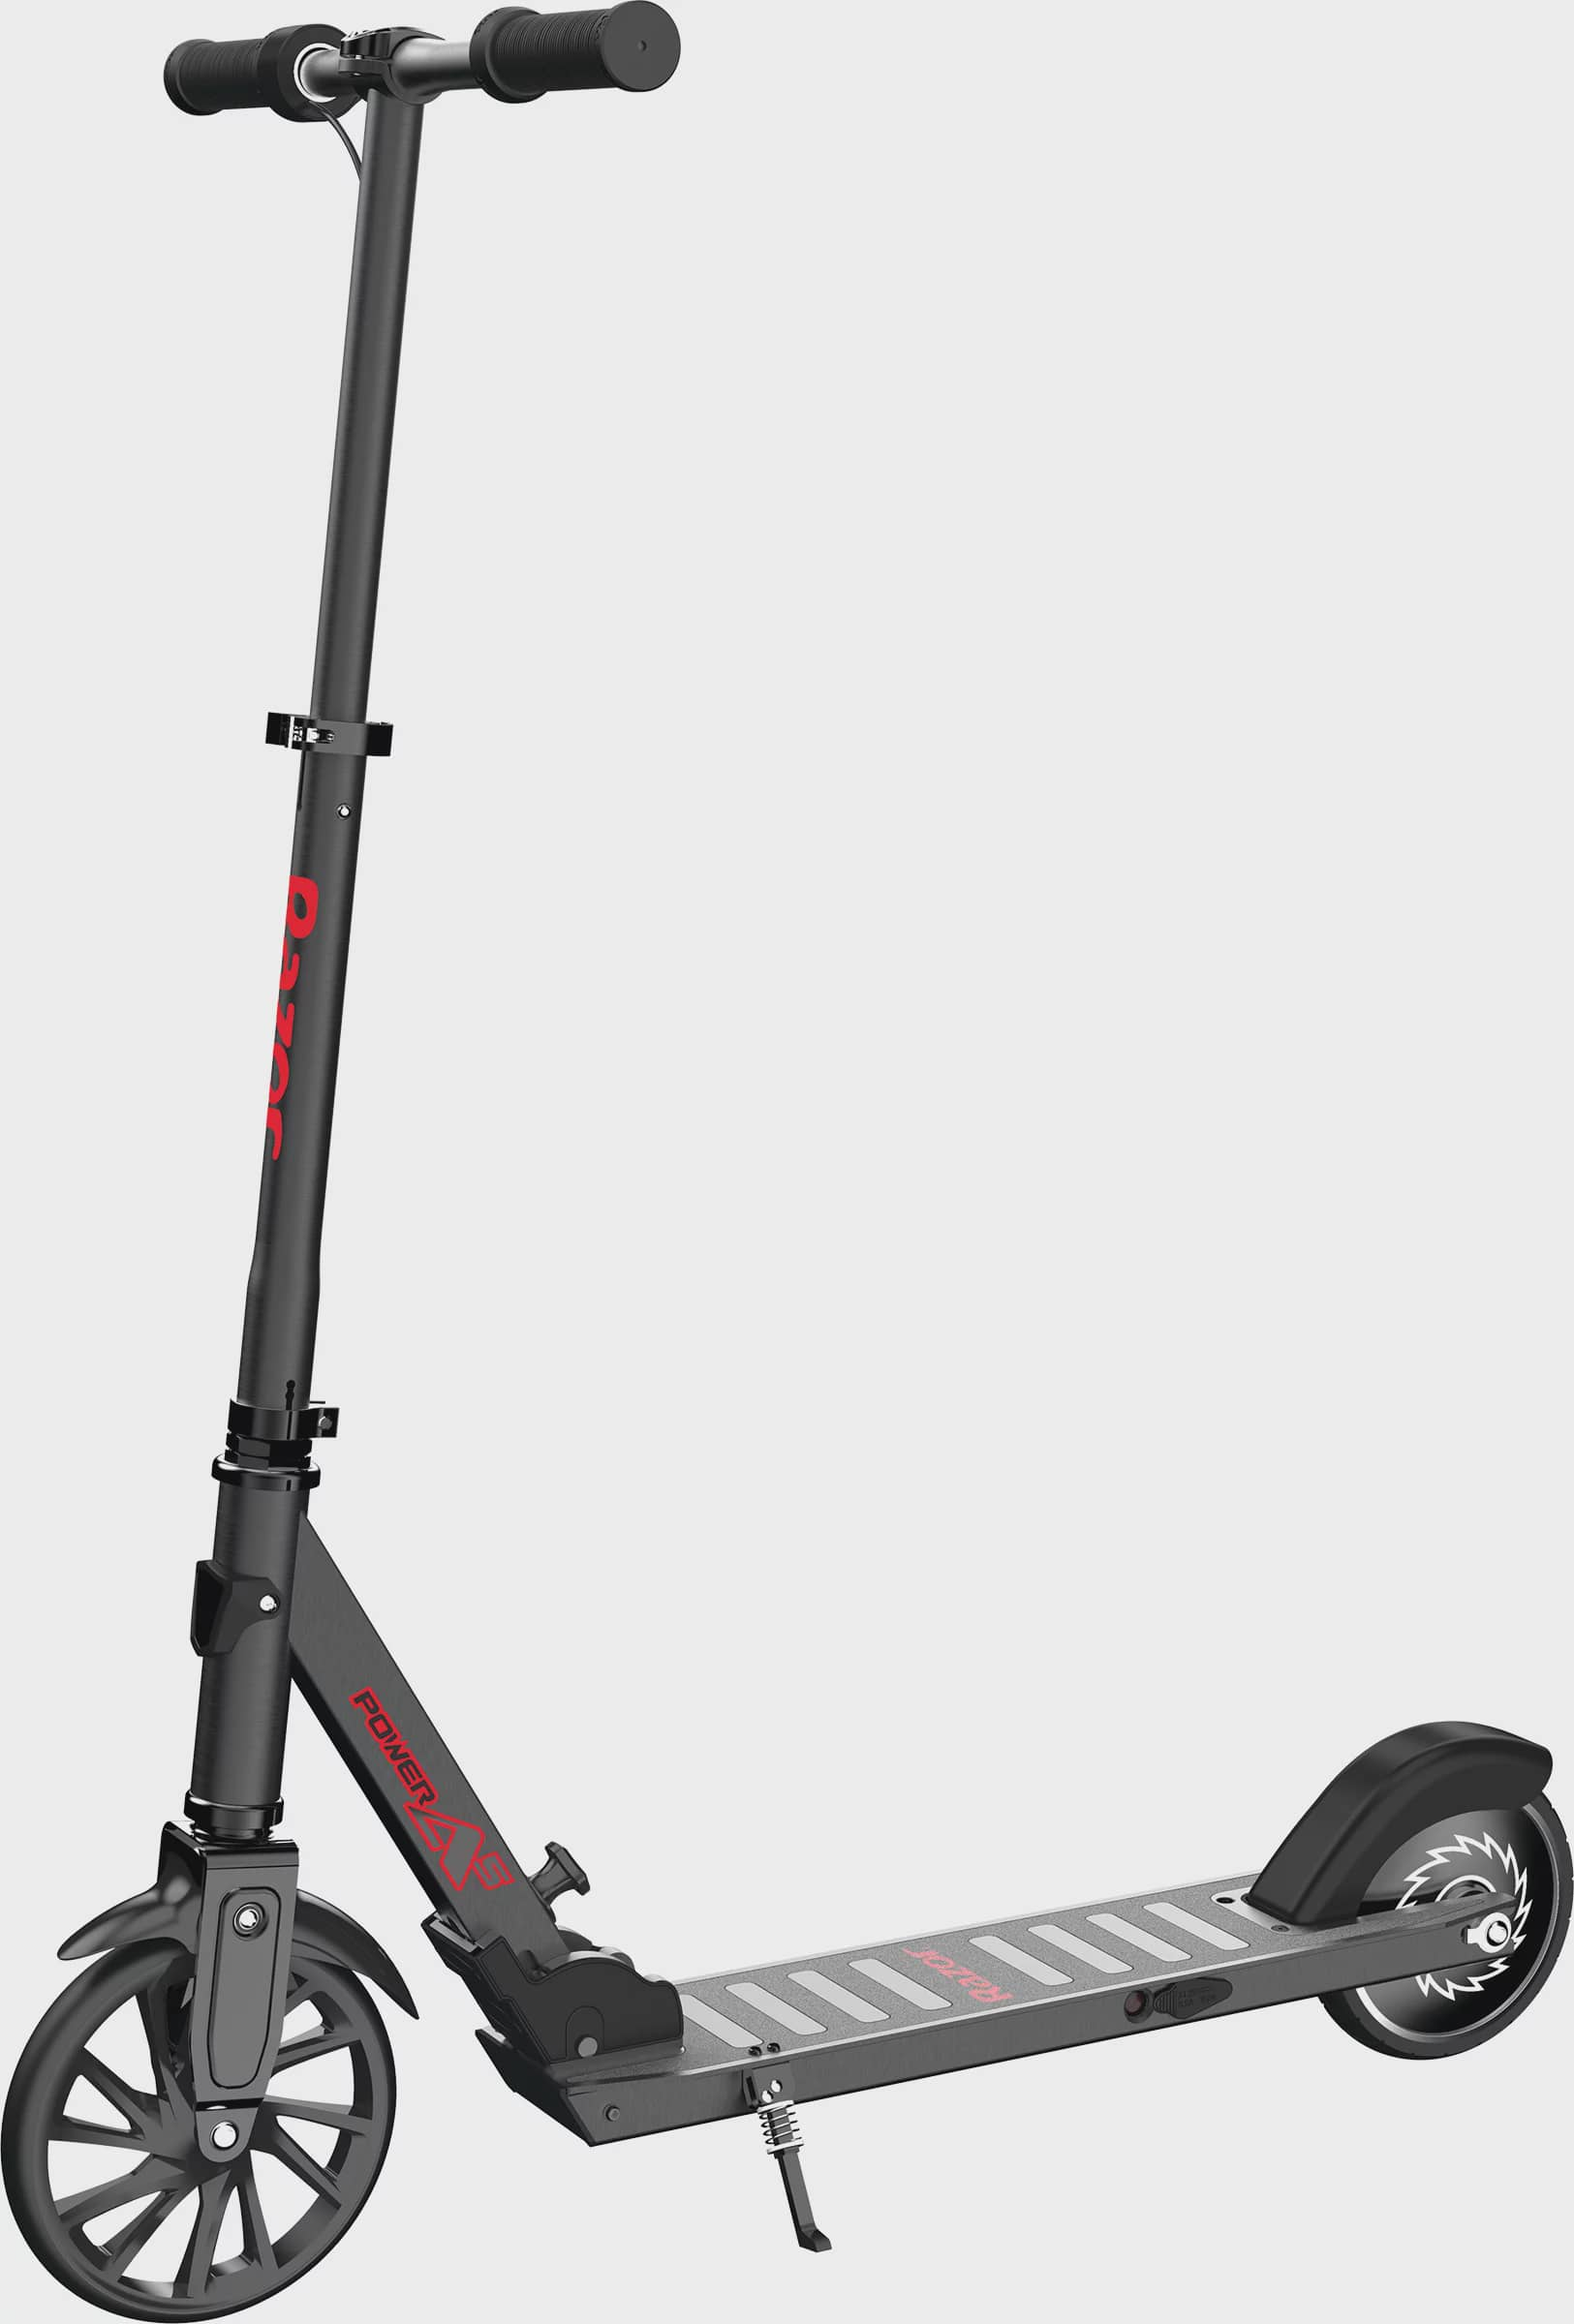 Razor Carbon Lux Kick Scooter Black Limited Edition Kids Ride Gift Best New